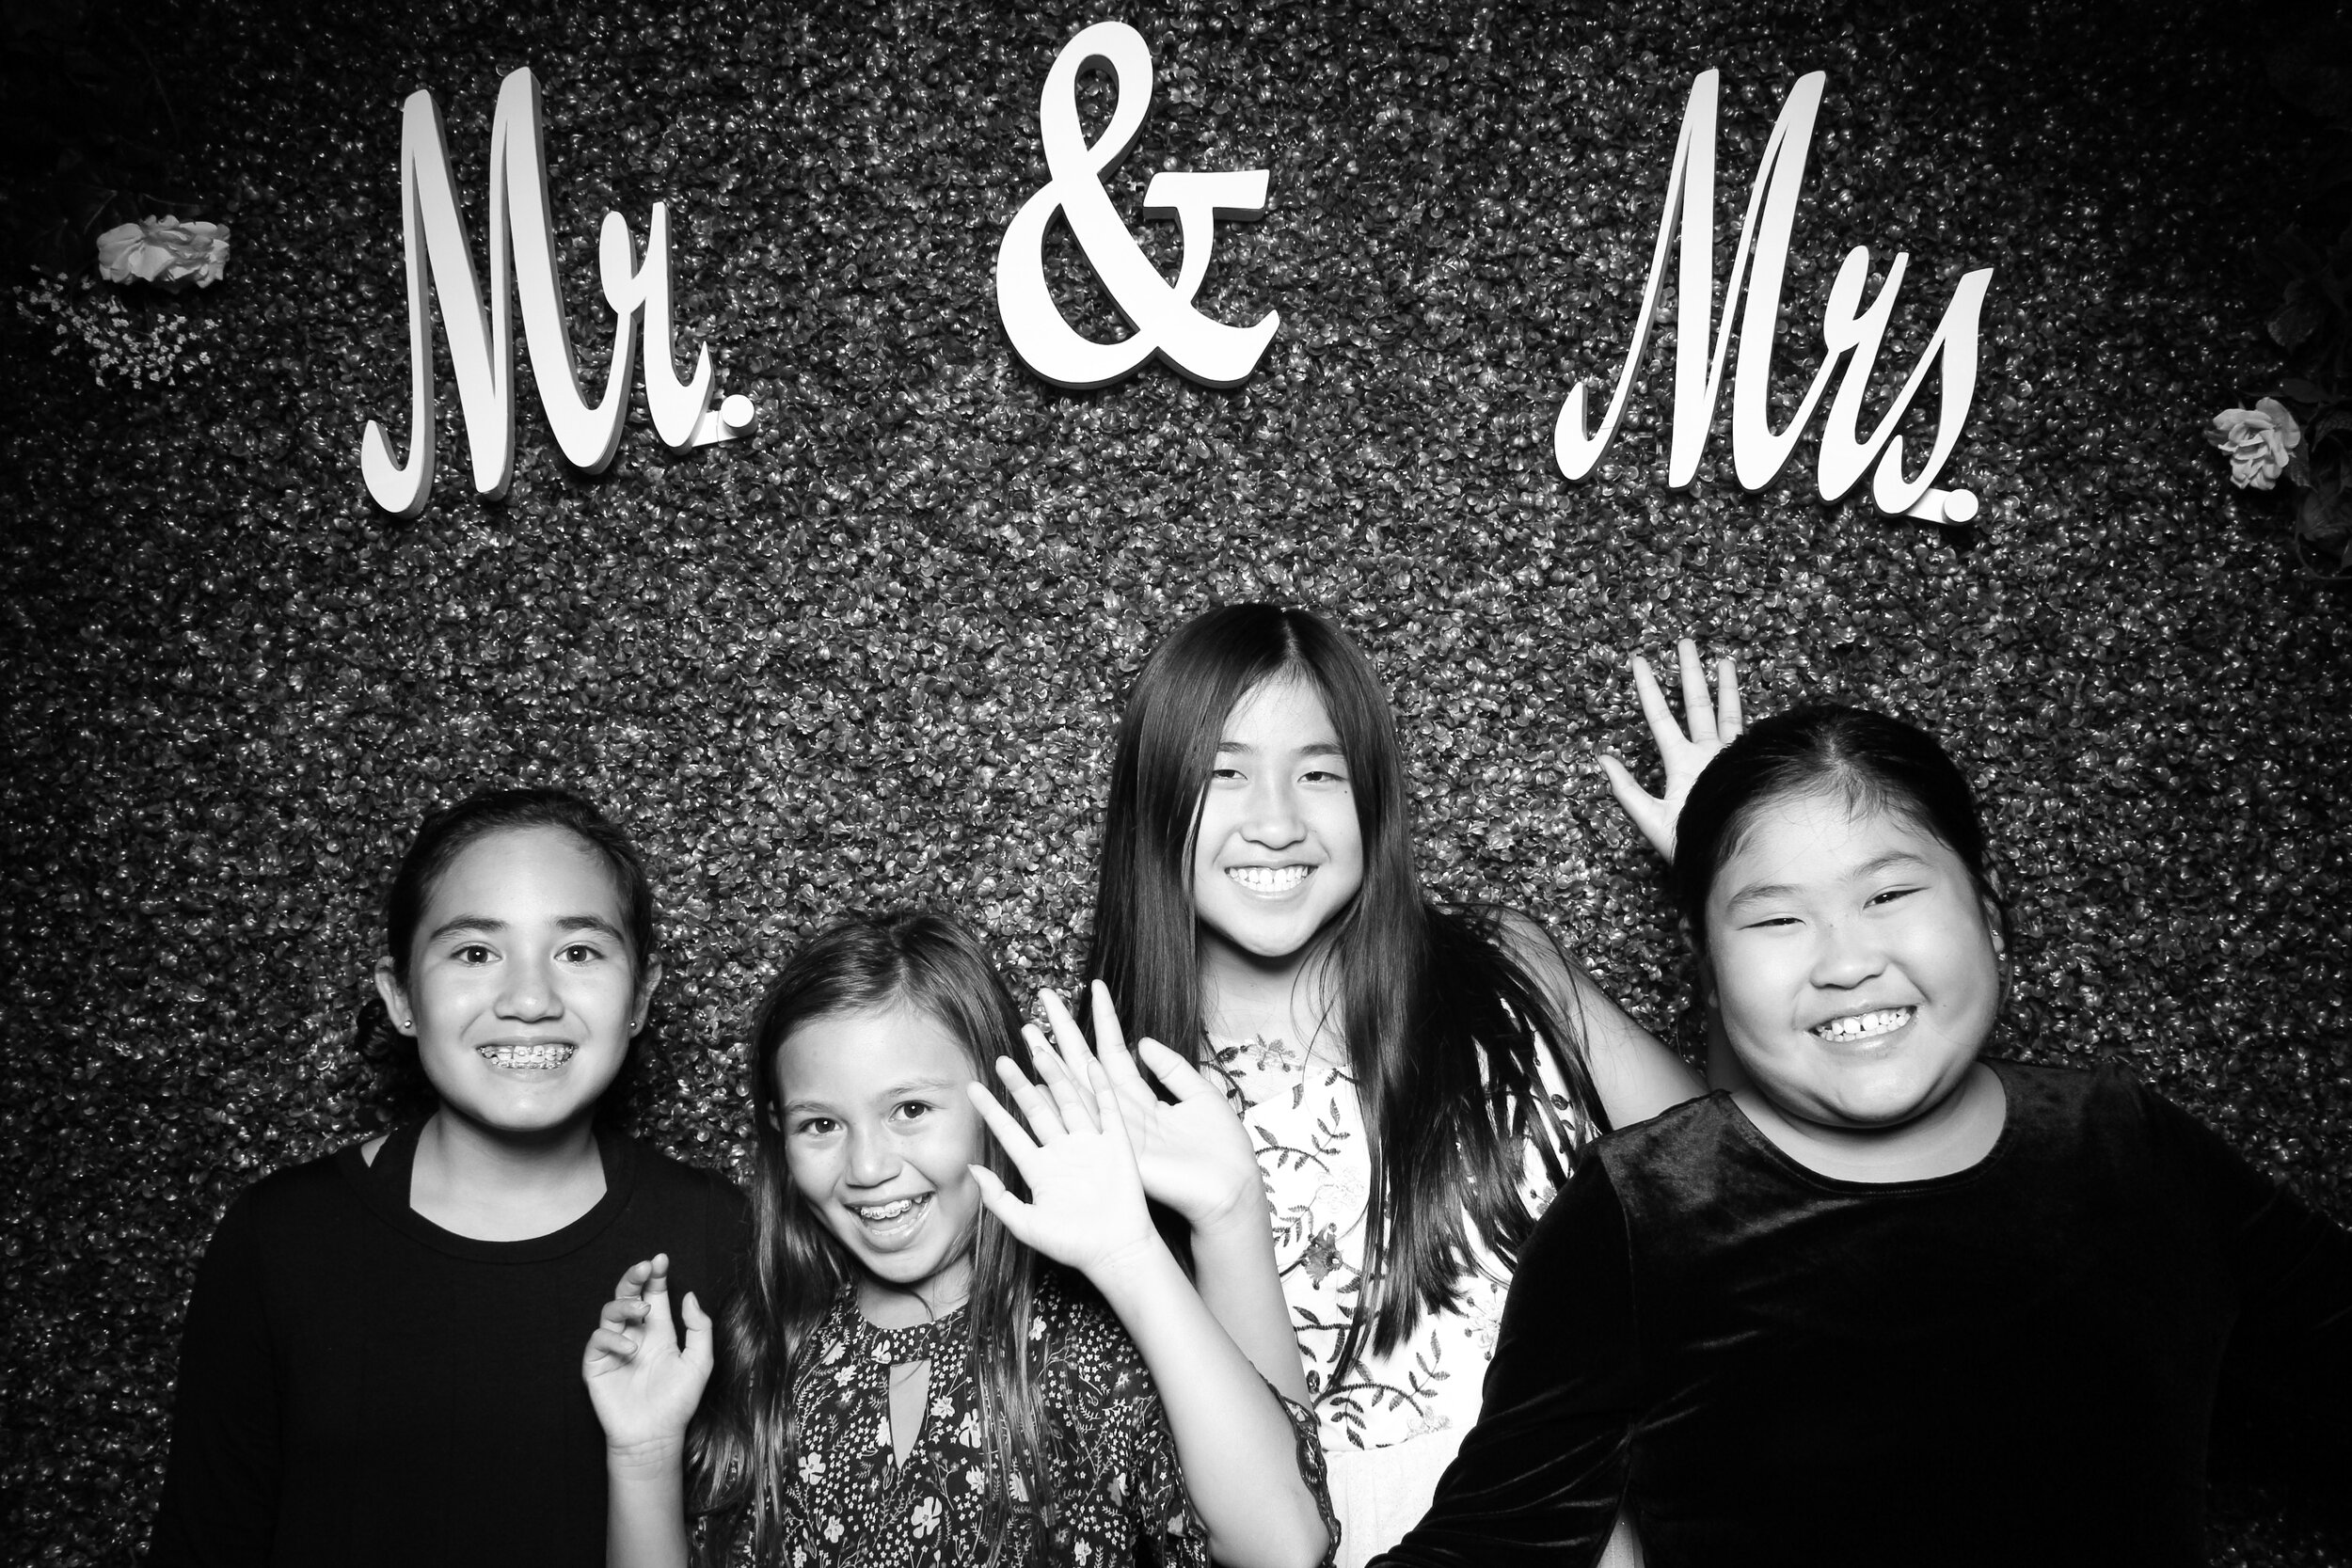 Green_Hedge_Ivy_Wall_Backdrop_Photo_Booth_Rental_Chicago_14.jpg